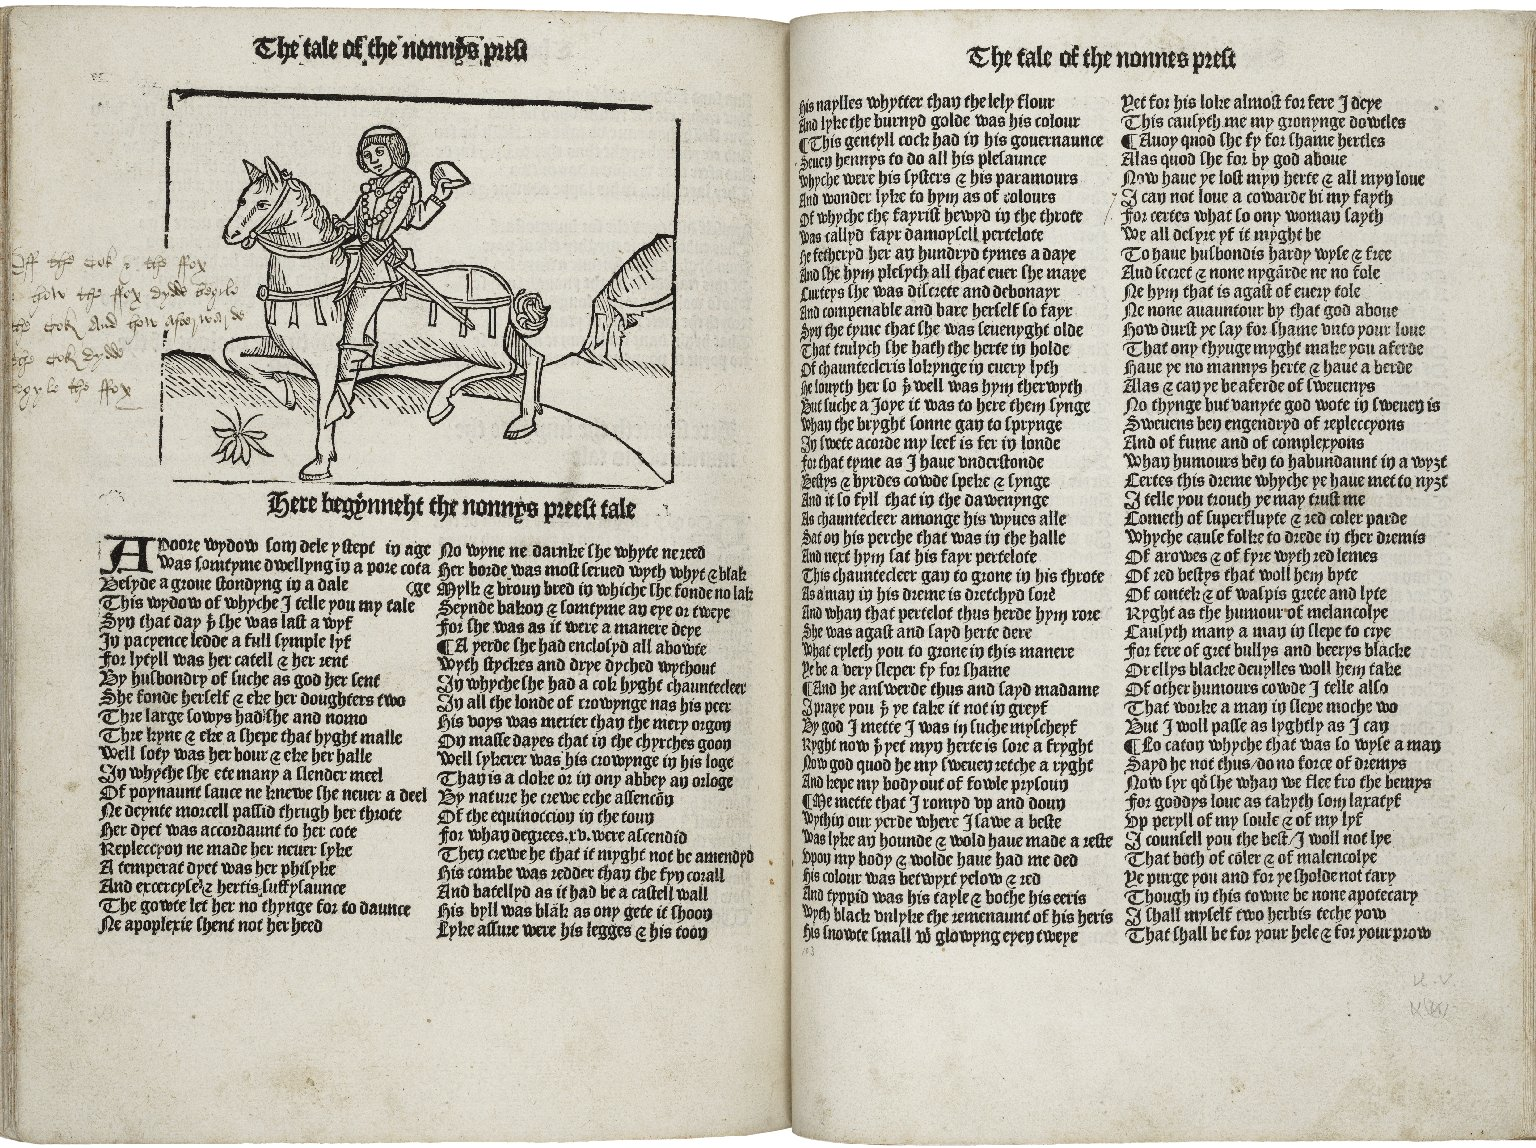 [Canterbury tales] The boke of Chaucer named Caunterbury tales.